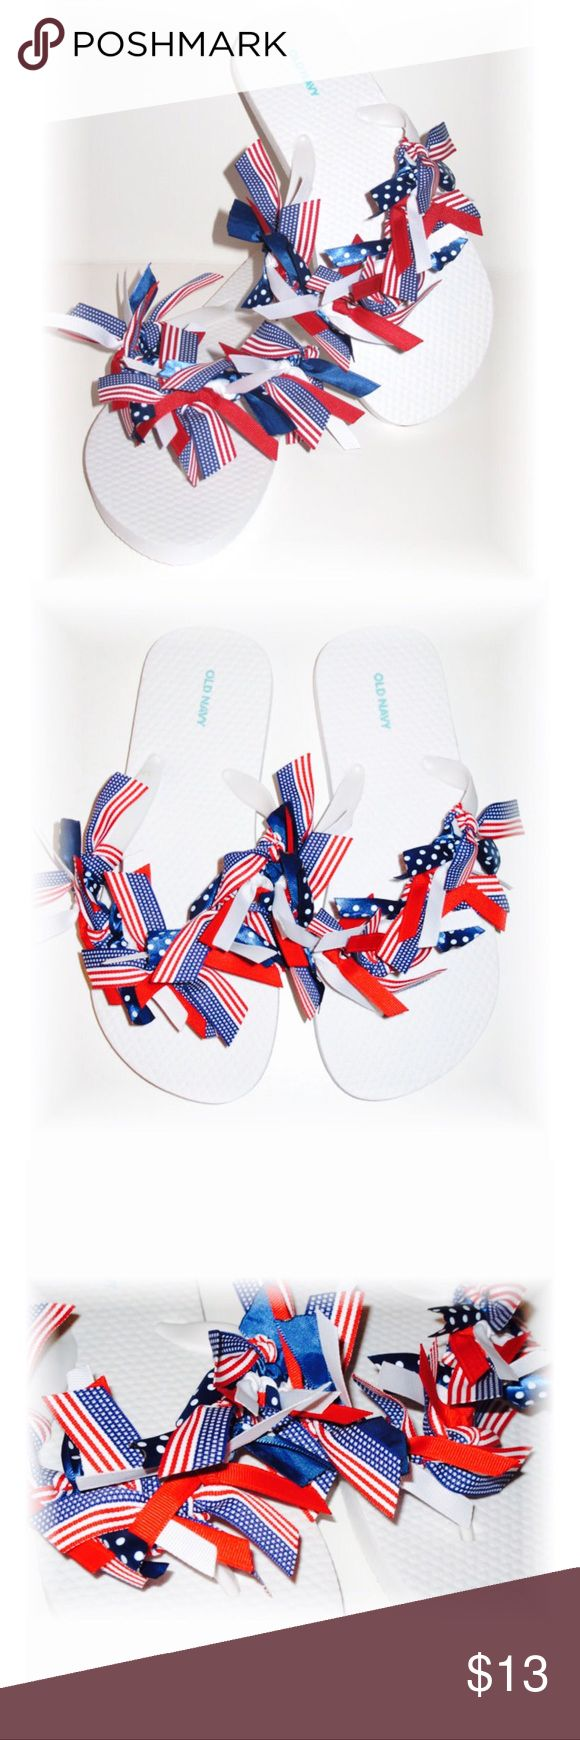 Girls Red White Blue Ribbon Flip Flops size 5/6 UP FOR SALE TODAY ARE THESE ADORABLE BOUTIQUE FLIP FLOPS!!   ♥Red white blue patriotic 4th of July  ♥GIRLS SIZE 5/6- made with Old Navy flip flops   ♥YOU WILL RECEIVE ONE PAIR OF FLIP FLOPS WITH A BEAUTIFUL MIX OF HAND CUT AND TIED RIBBONS! ALL ENDS ARE HEAT SEALED TO PREVENT FRAYING.                                                        ♥This is a new hand embellished item made by me from my online and craft faire boutique! THANKS SO MUCH FOR…